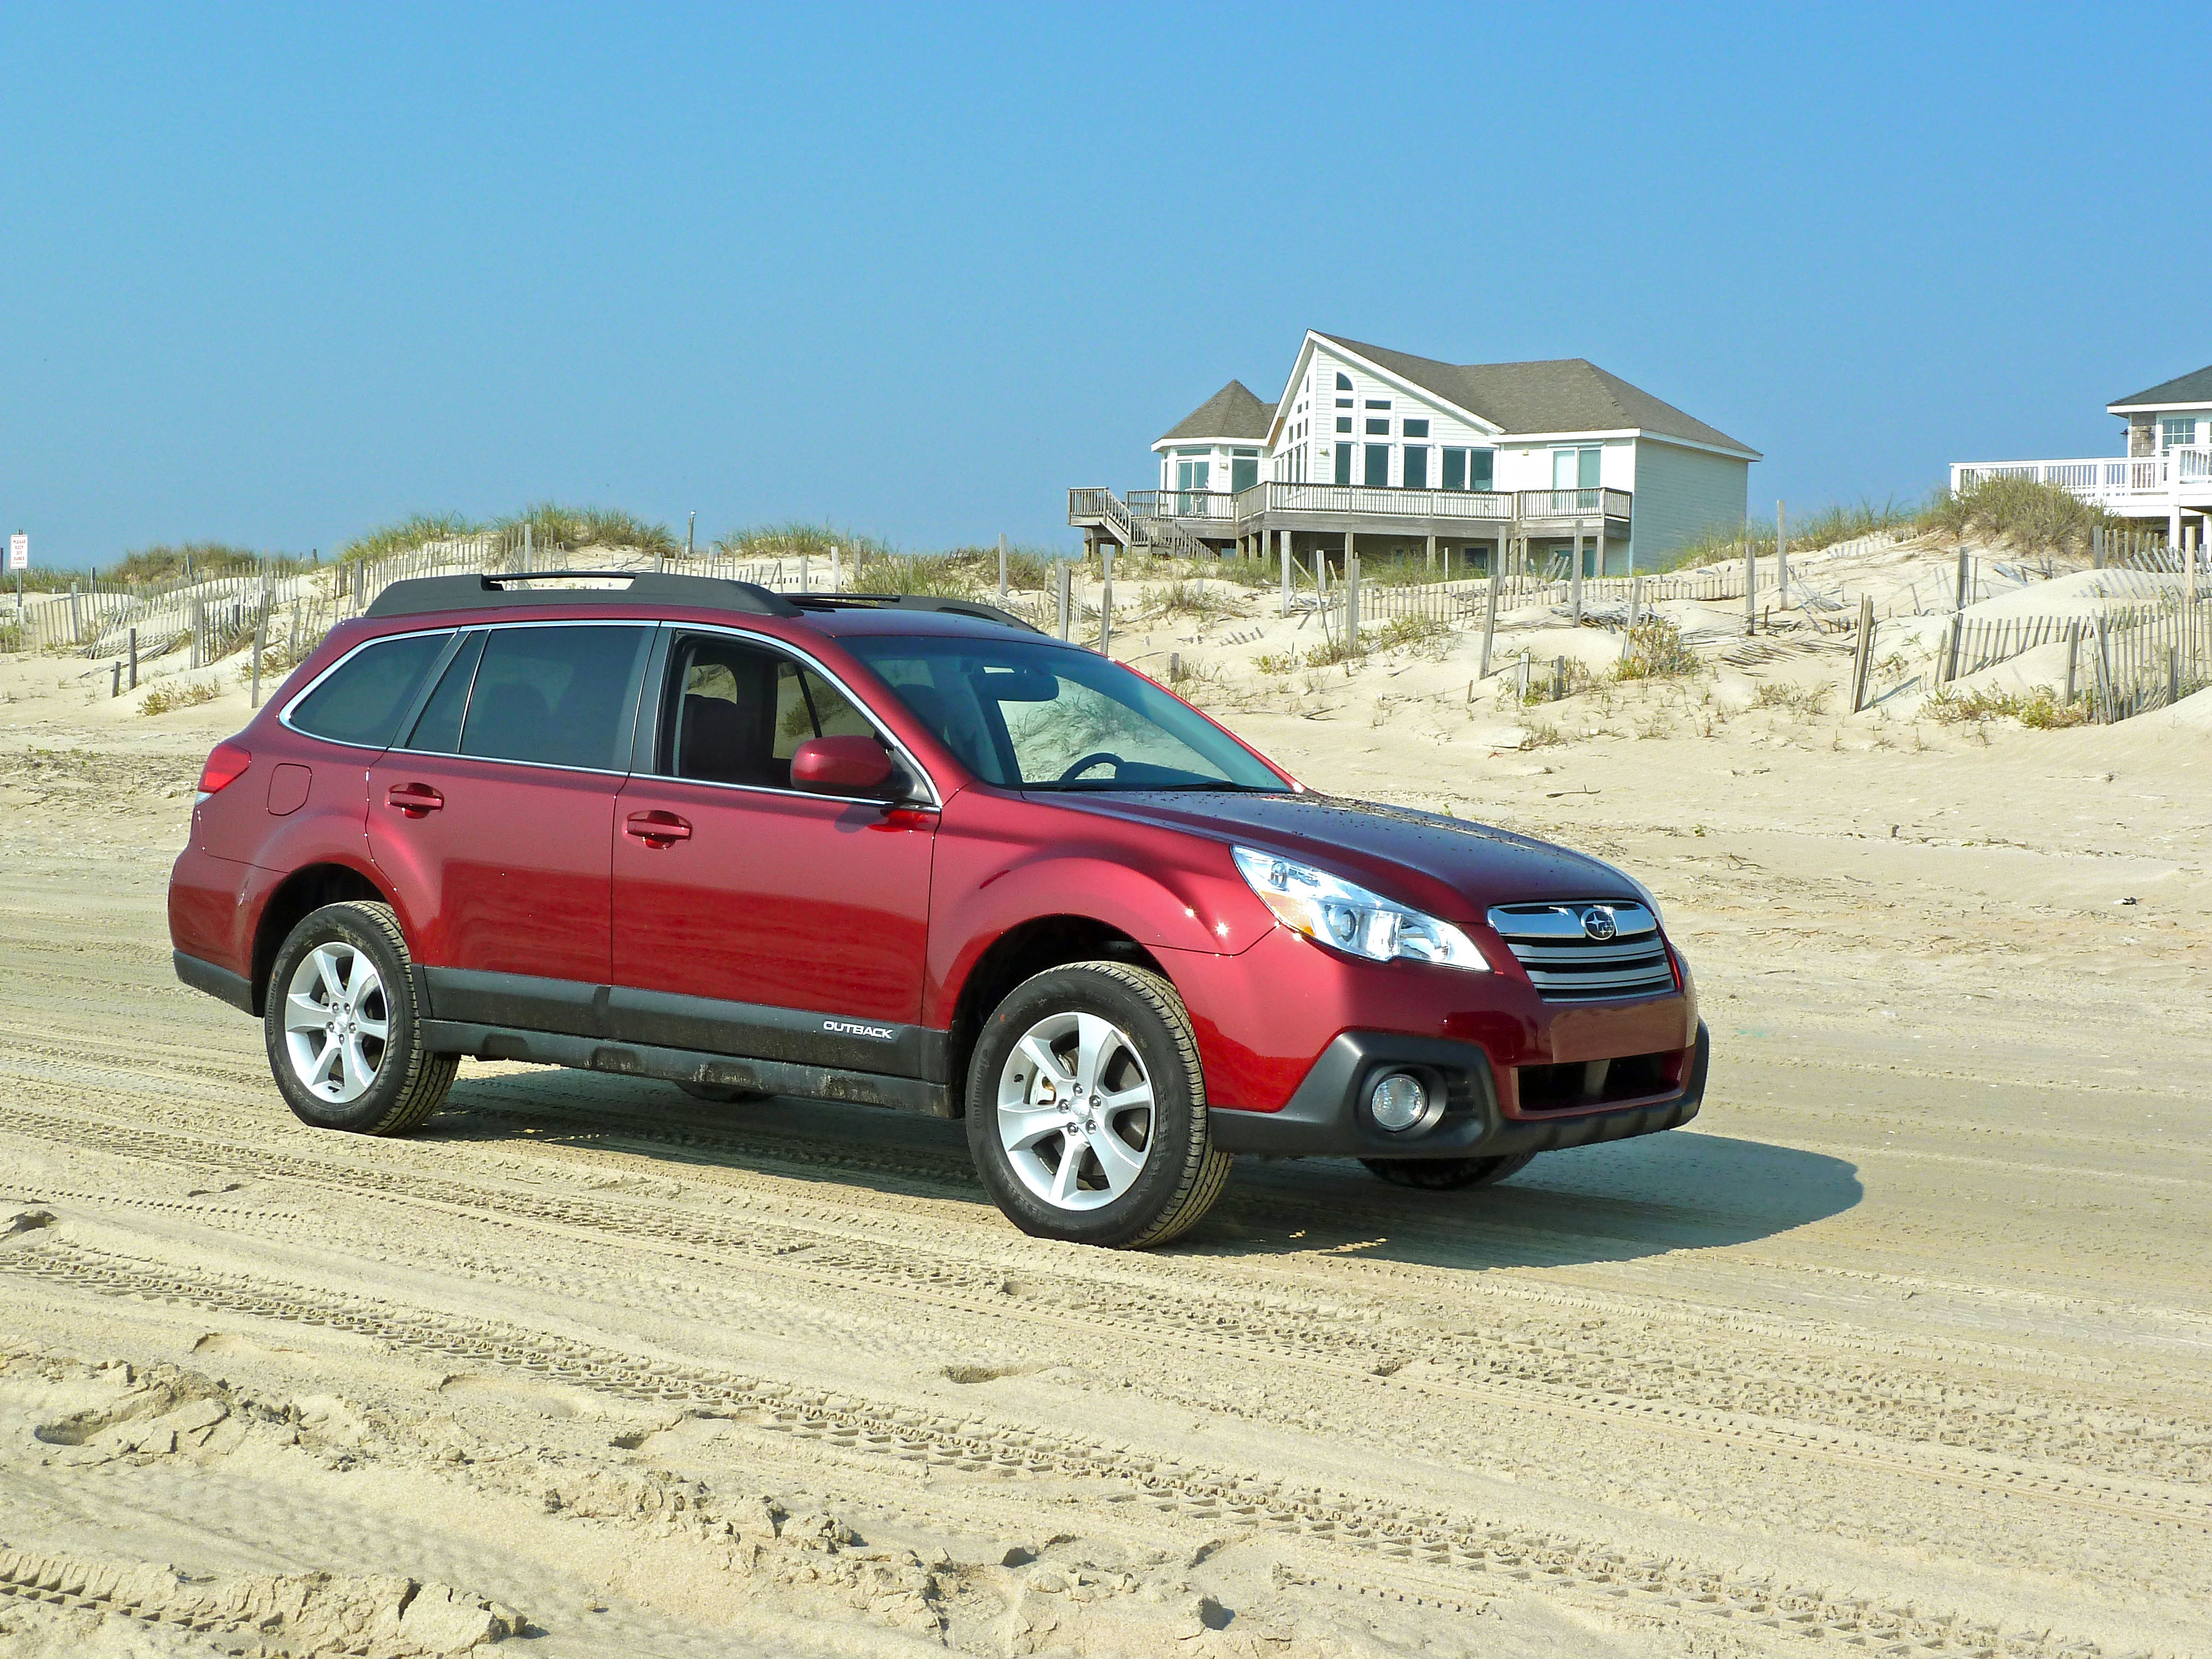 Subaru Eyesight 2013 Outback Outshines In Outer Banks